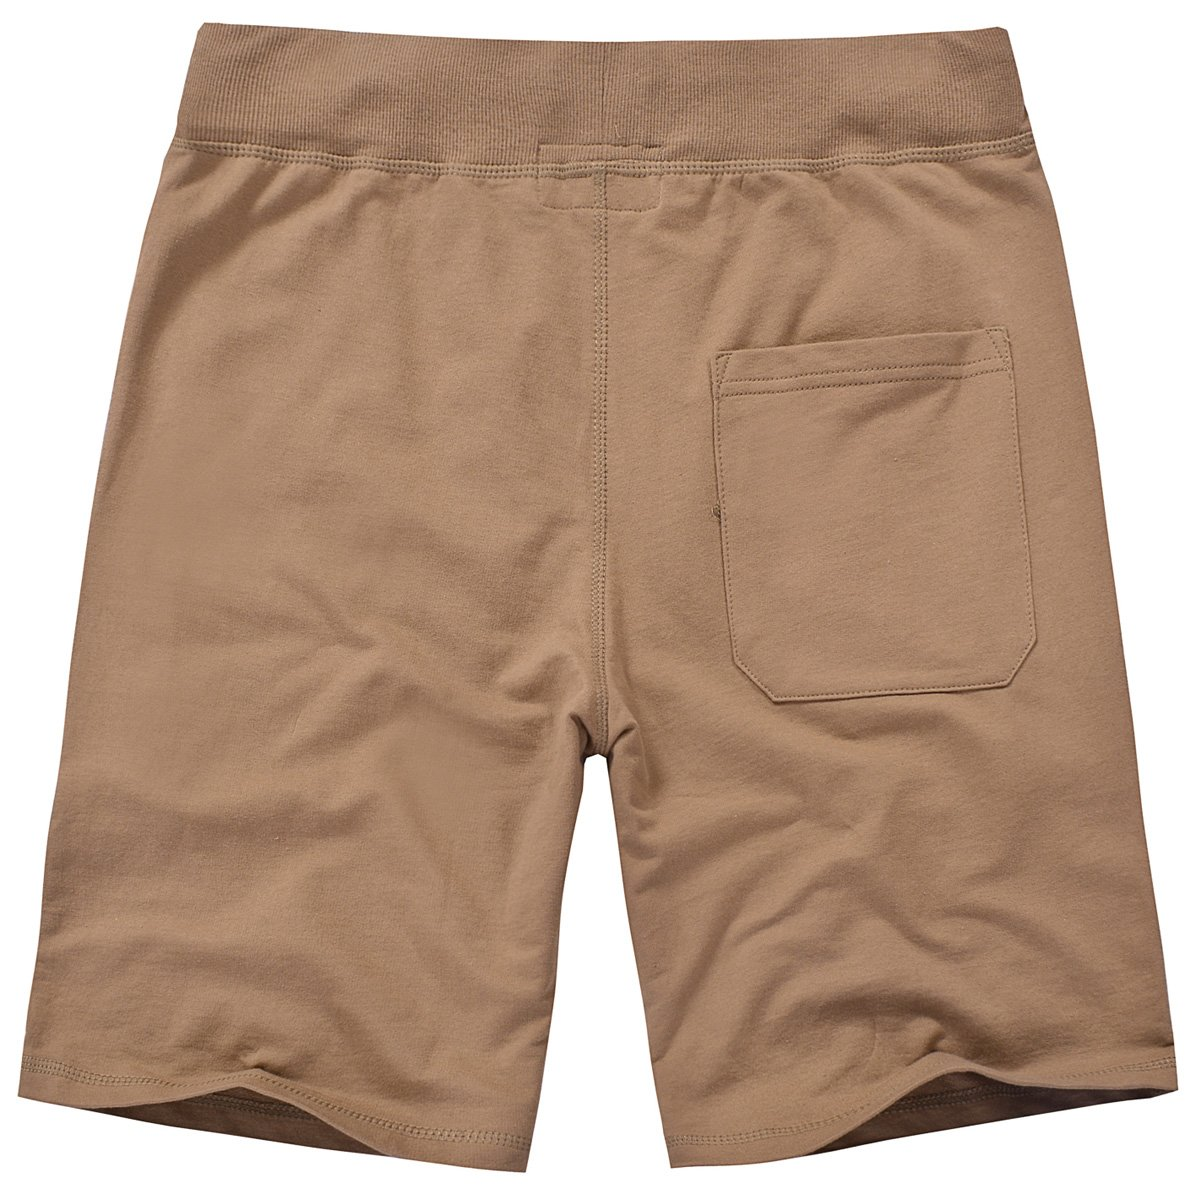 Amy Coulee Men's Cotton Casual Short with Pockets (S, Brown) by Amy Coulee (Image #2)